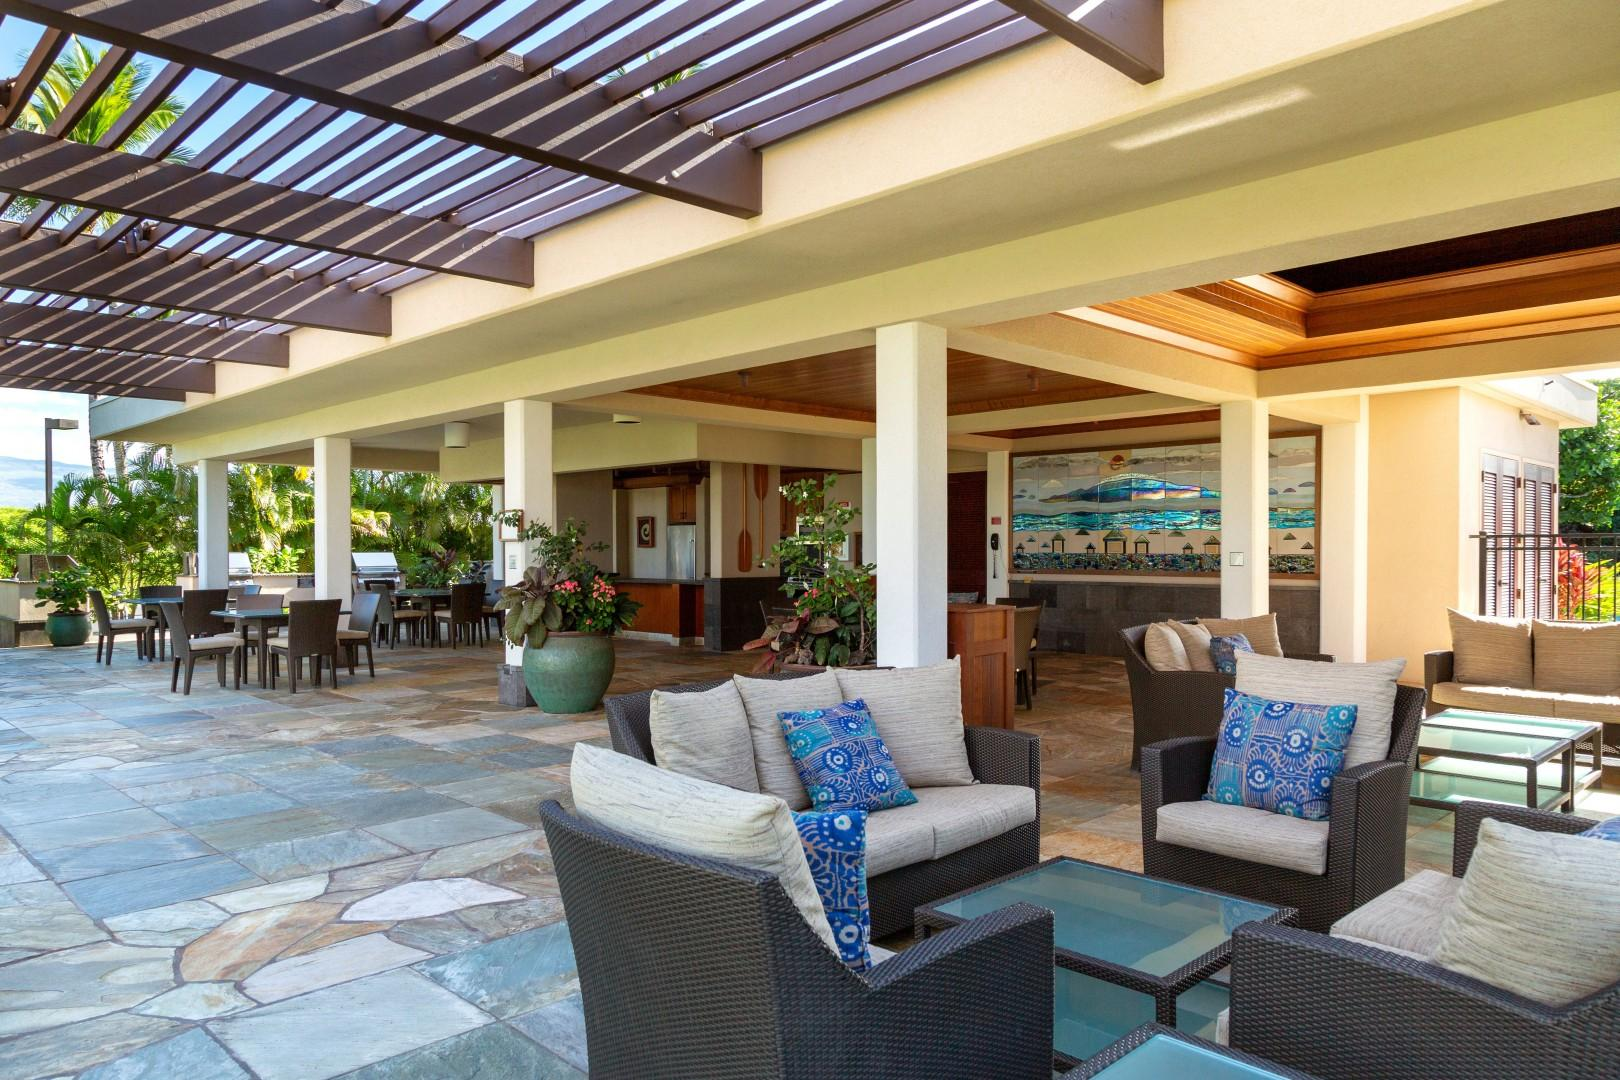 Enjoy BBQ's, a kitchen area and loung areas too at the clubhouse.